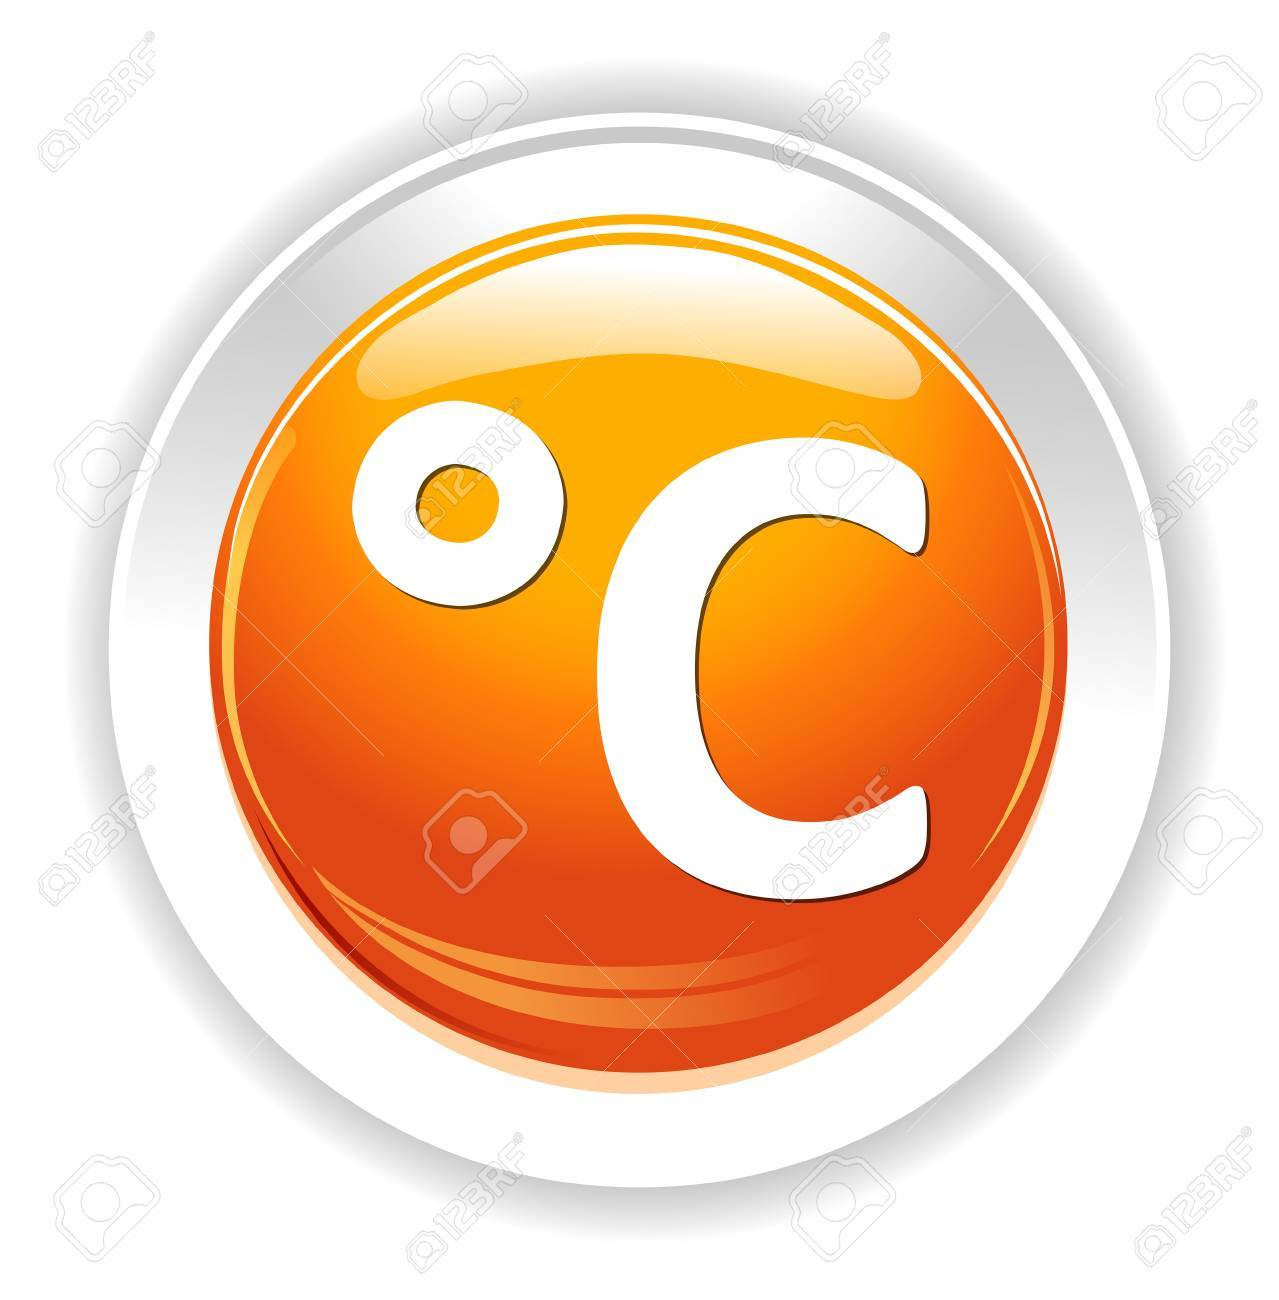 weather c degree icon royalty free cliparts vectors and stock